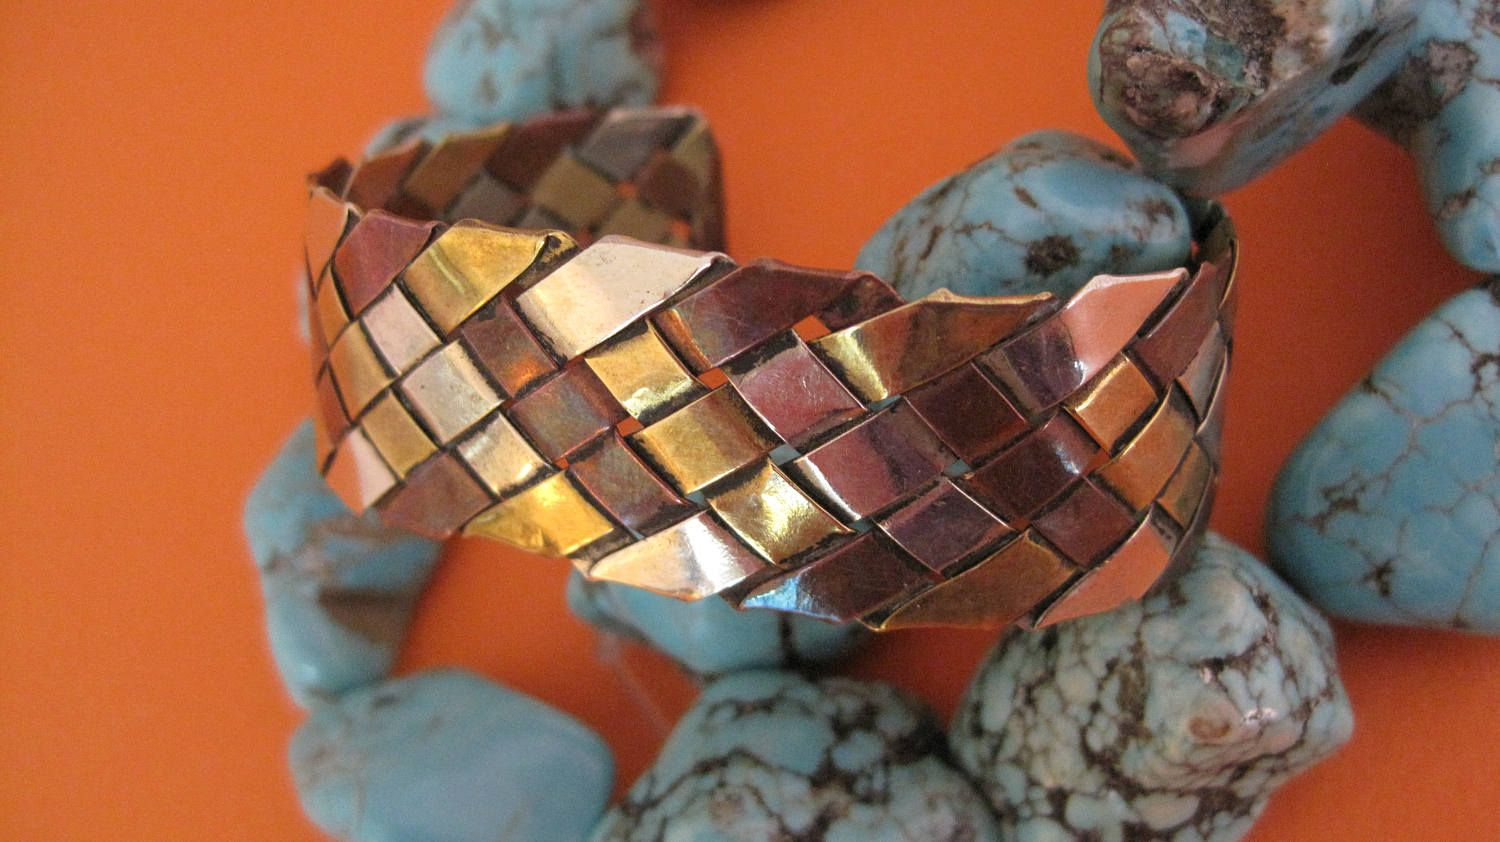 Old Modern Mixed Metals, Woven, Braided Copper, Sterling, Brass, Handmade Cuff, Bracelet by shopnestandcompany on Etsy